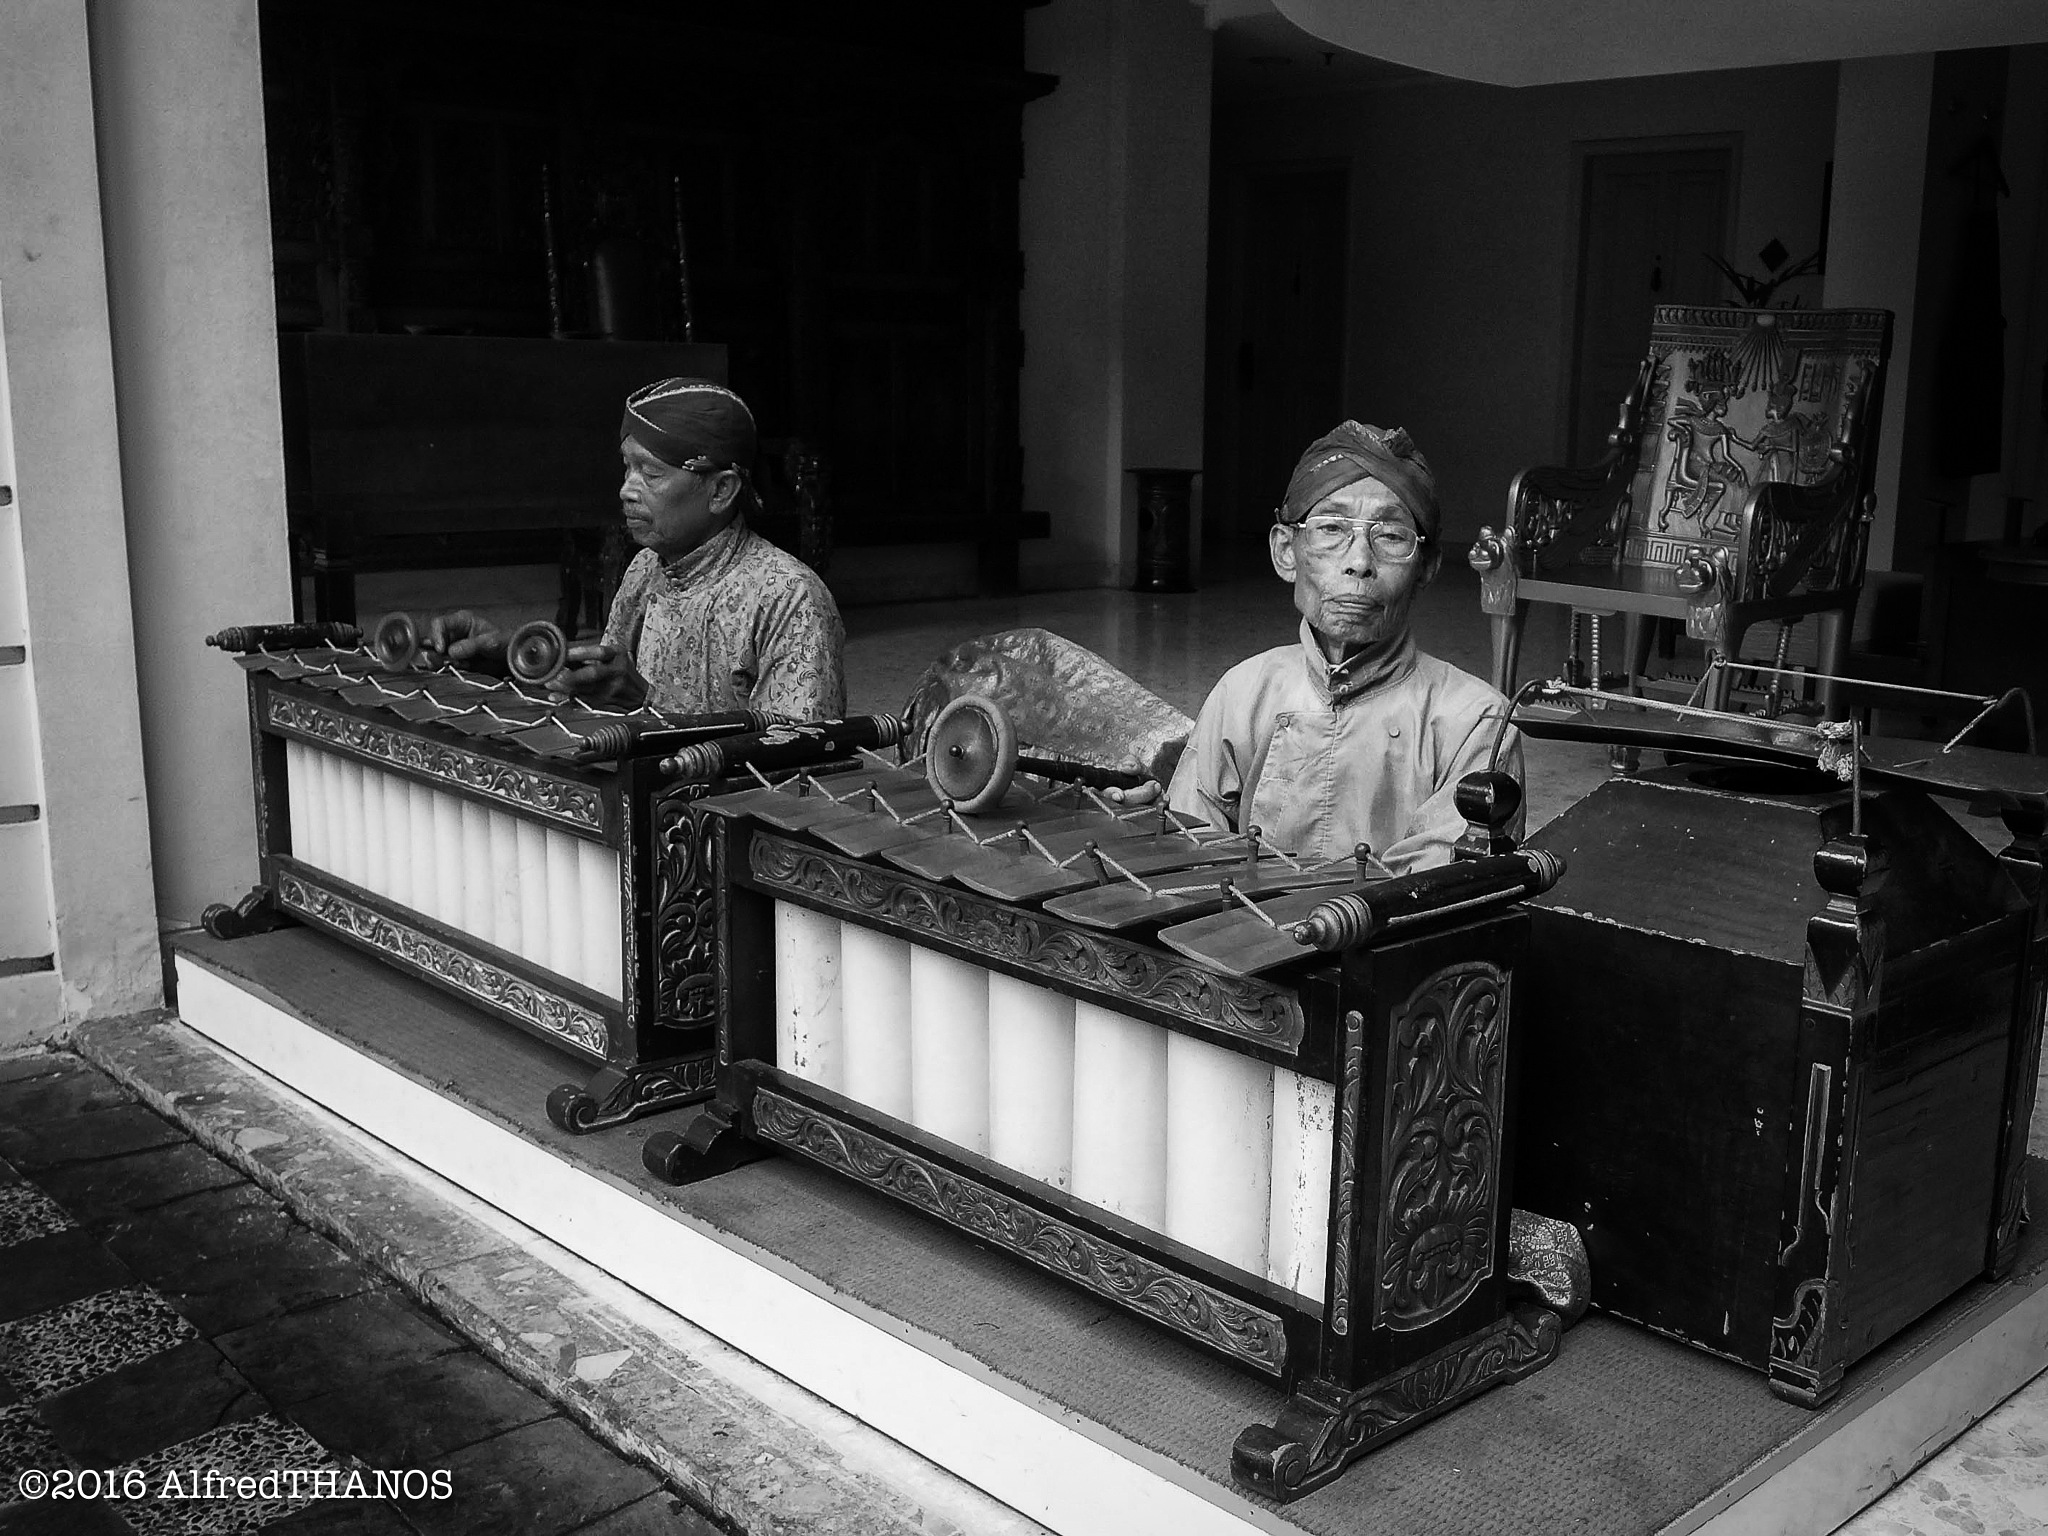 gamelan players by alfredthanos